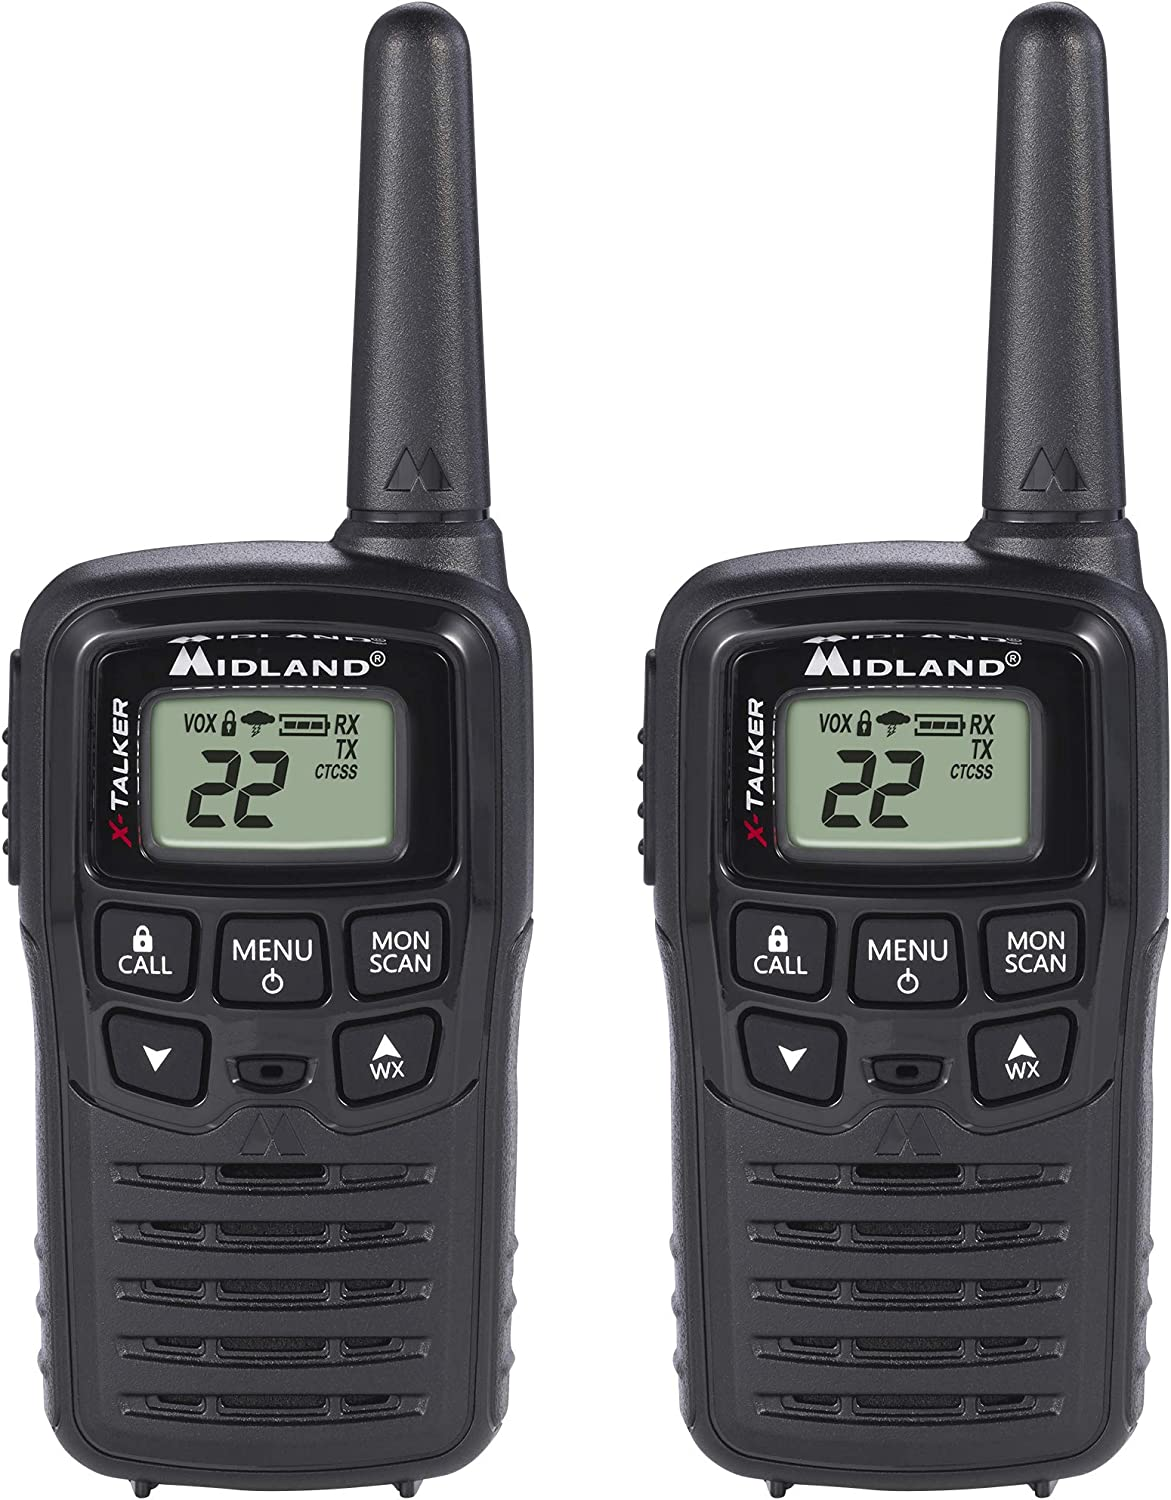 Midland Now National uniform free shipping on sale - T10 X-TALKER 22 FRS Talkies Walkie Channel Extended